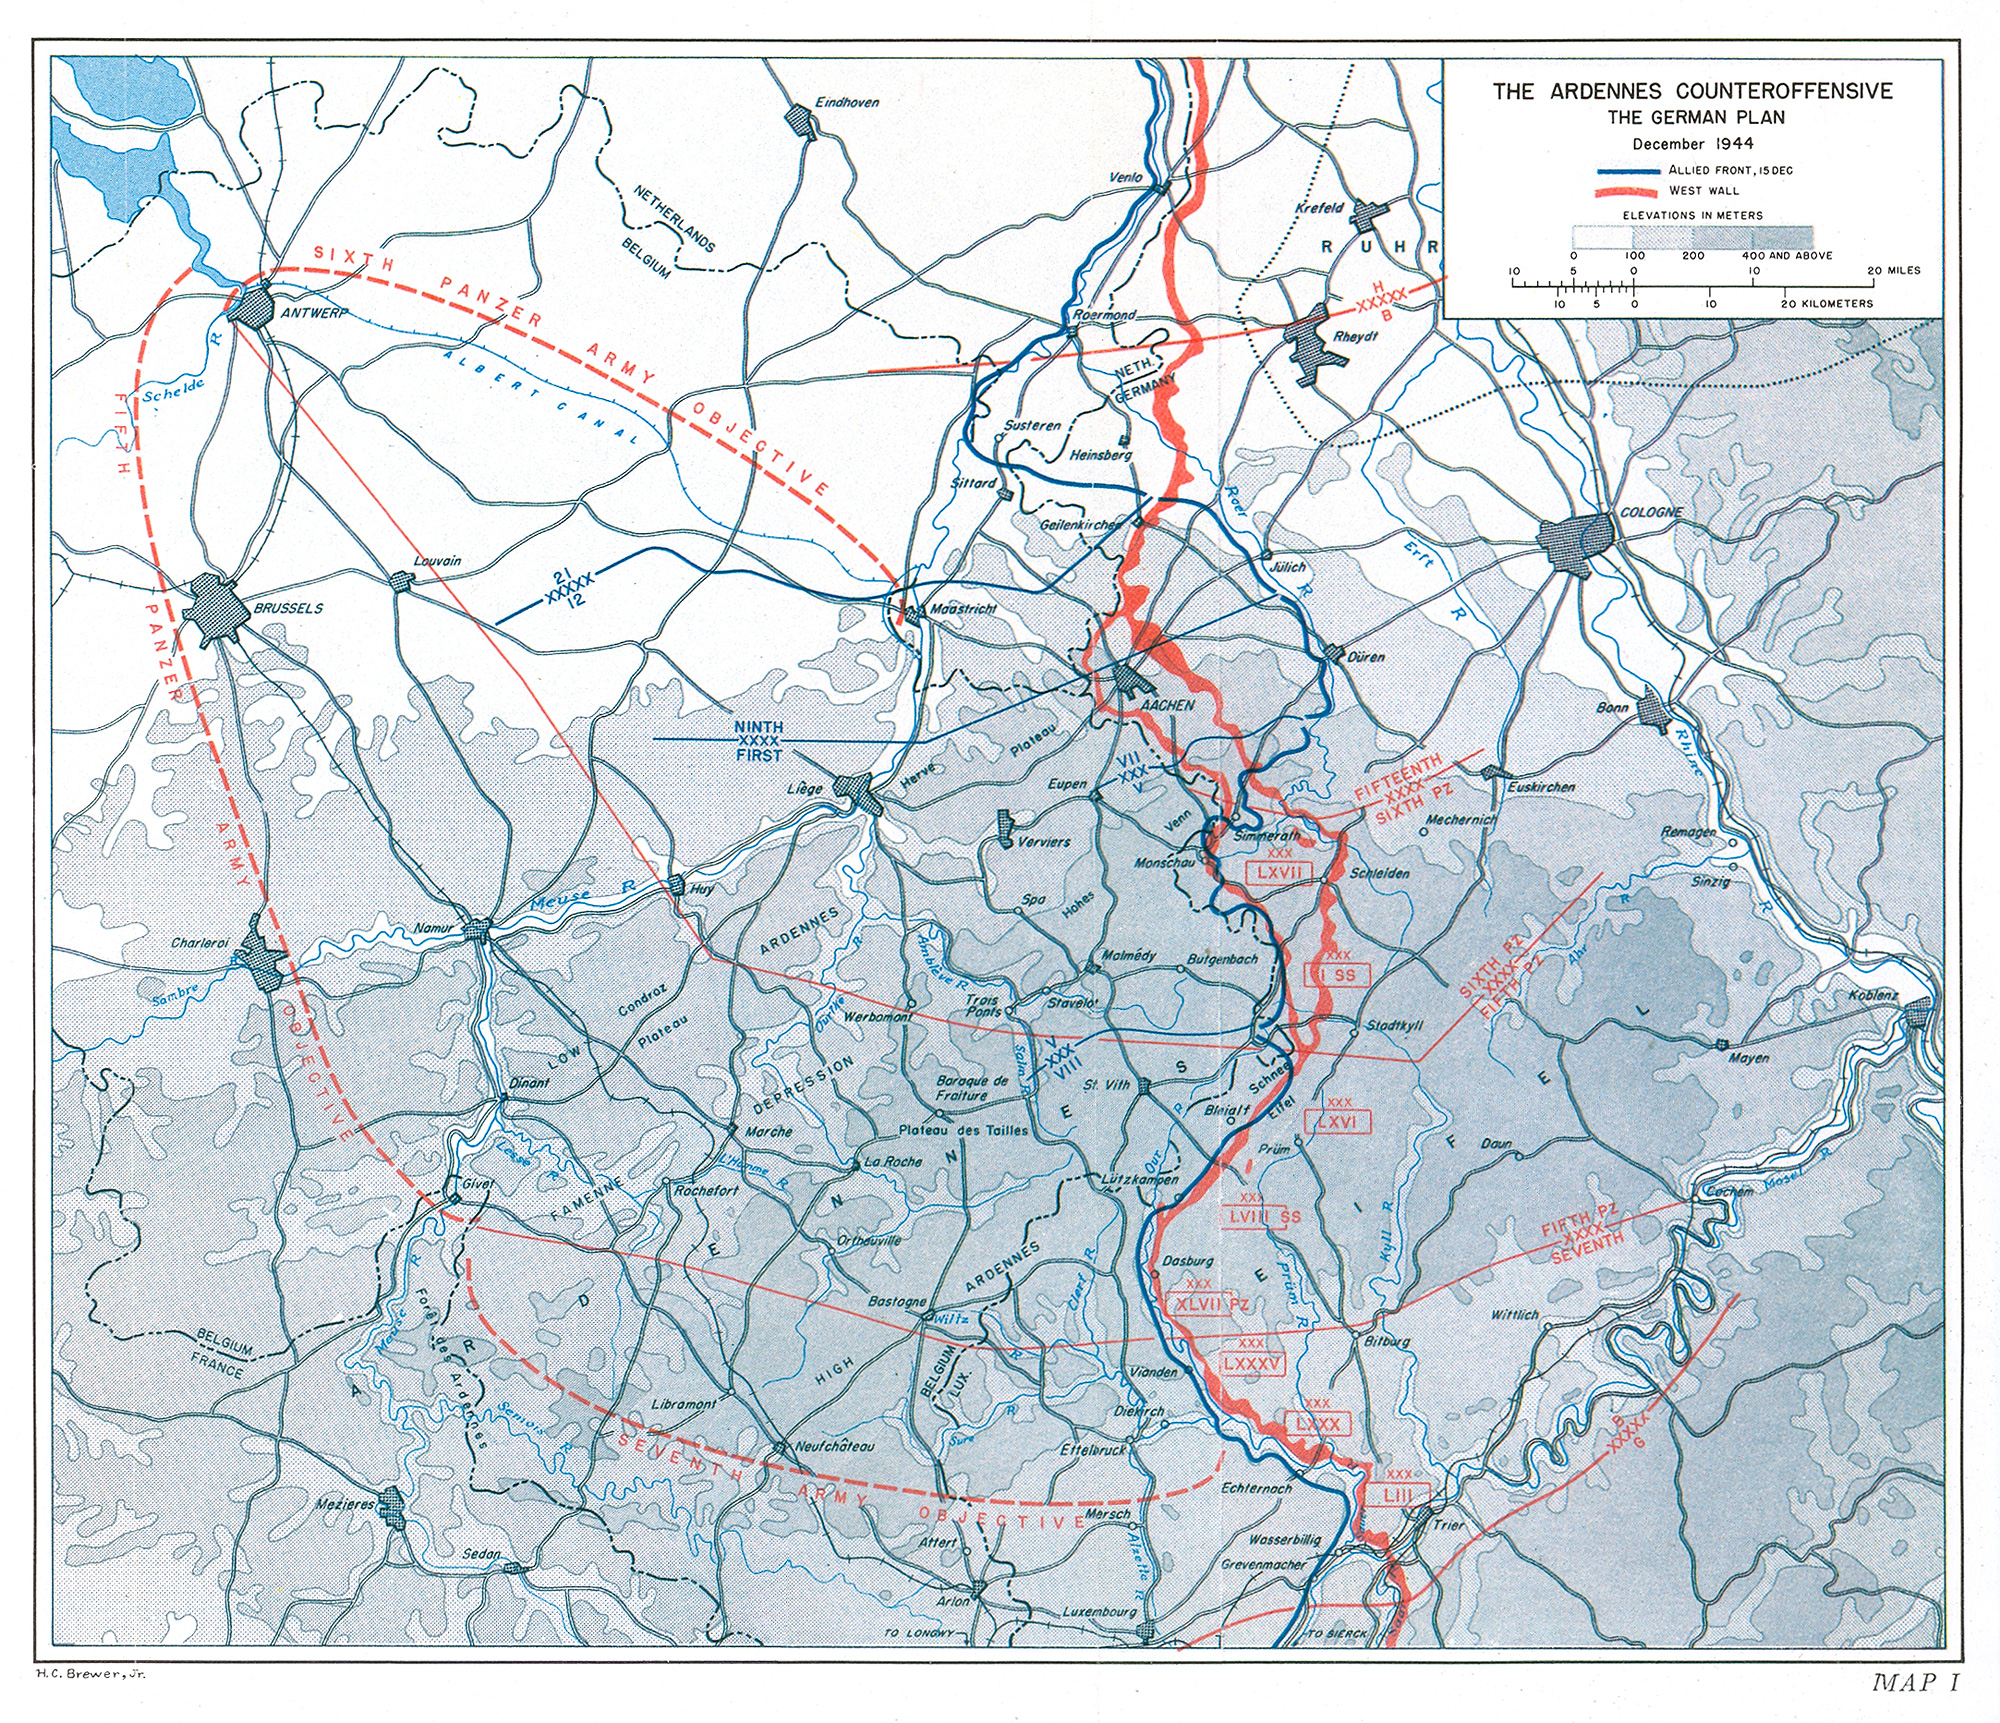 i the ardennes counteroffensive the german plan december 1944